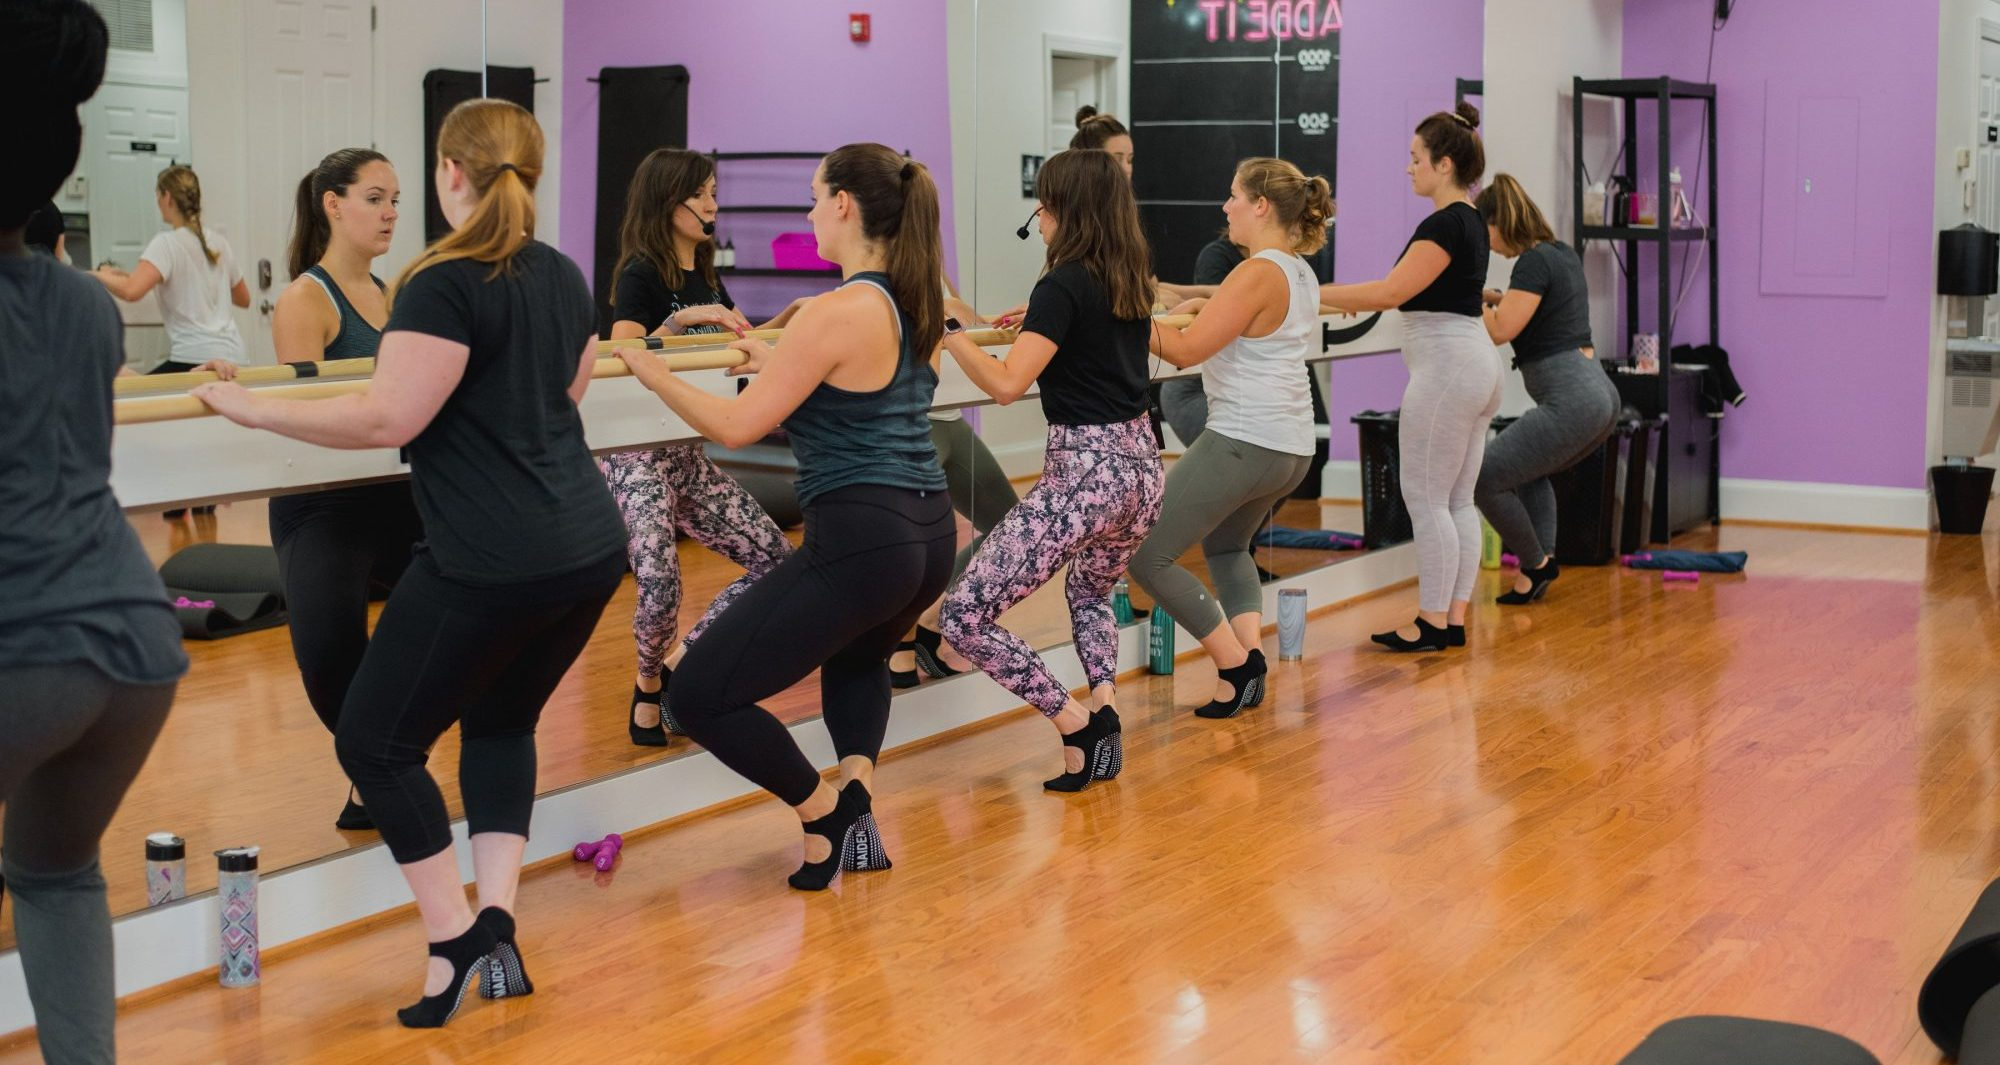 The method behind our cardio barre classes